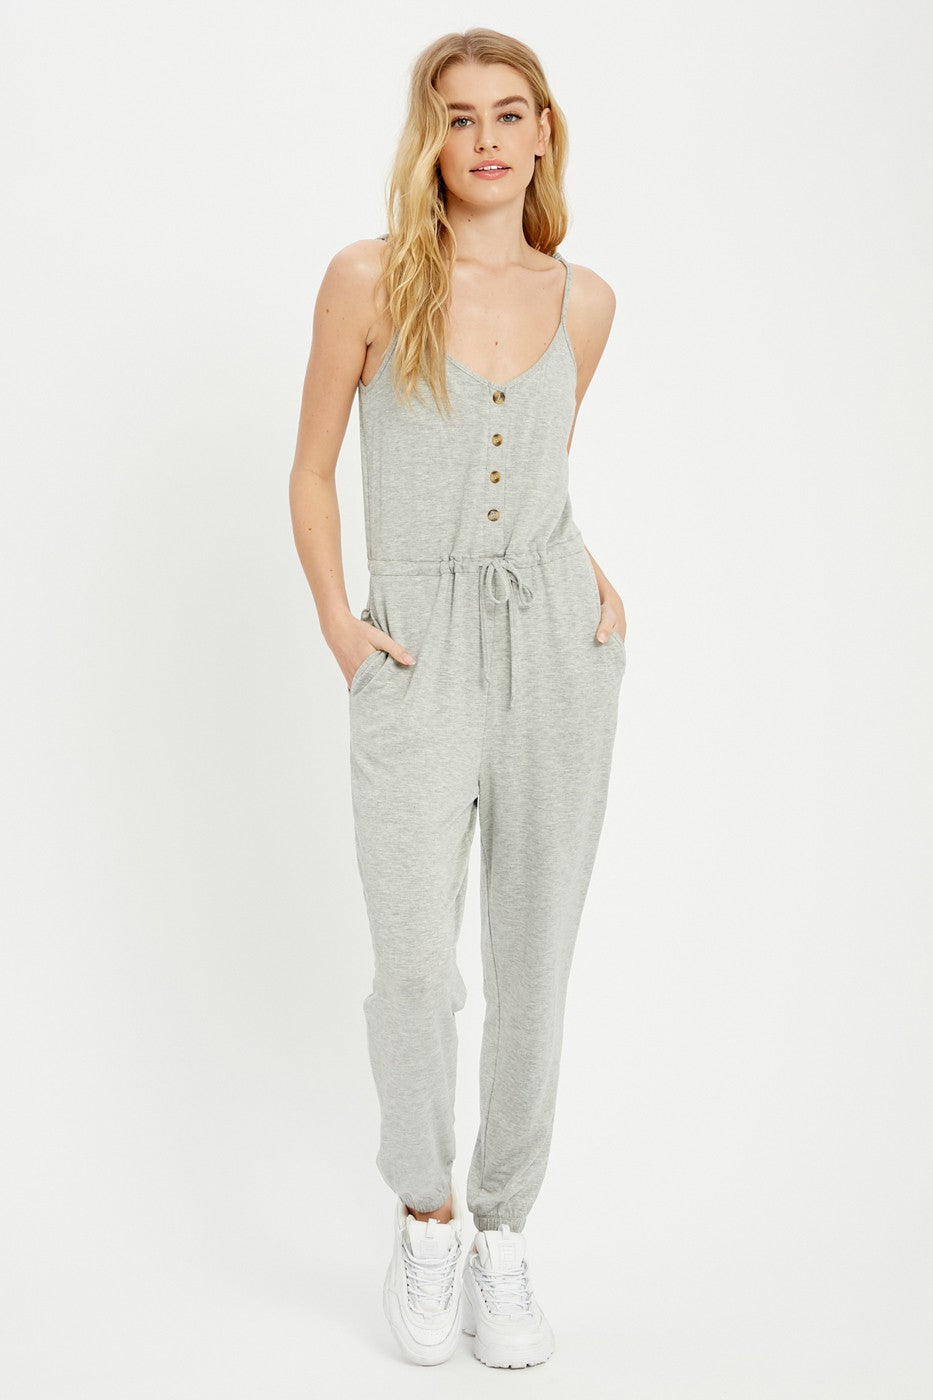 Easy on Sunday Mornings Jumpsuit